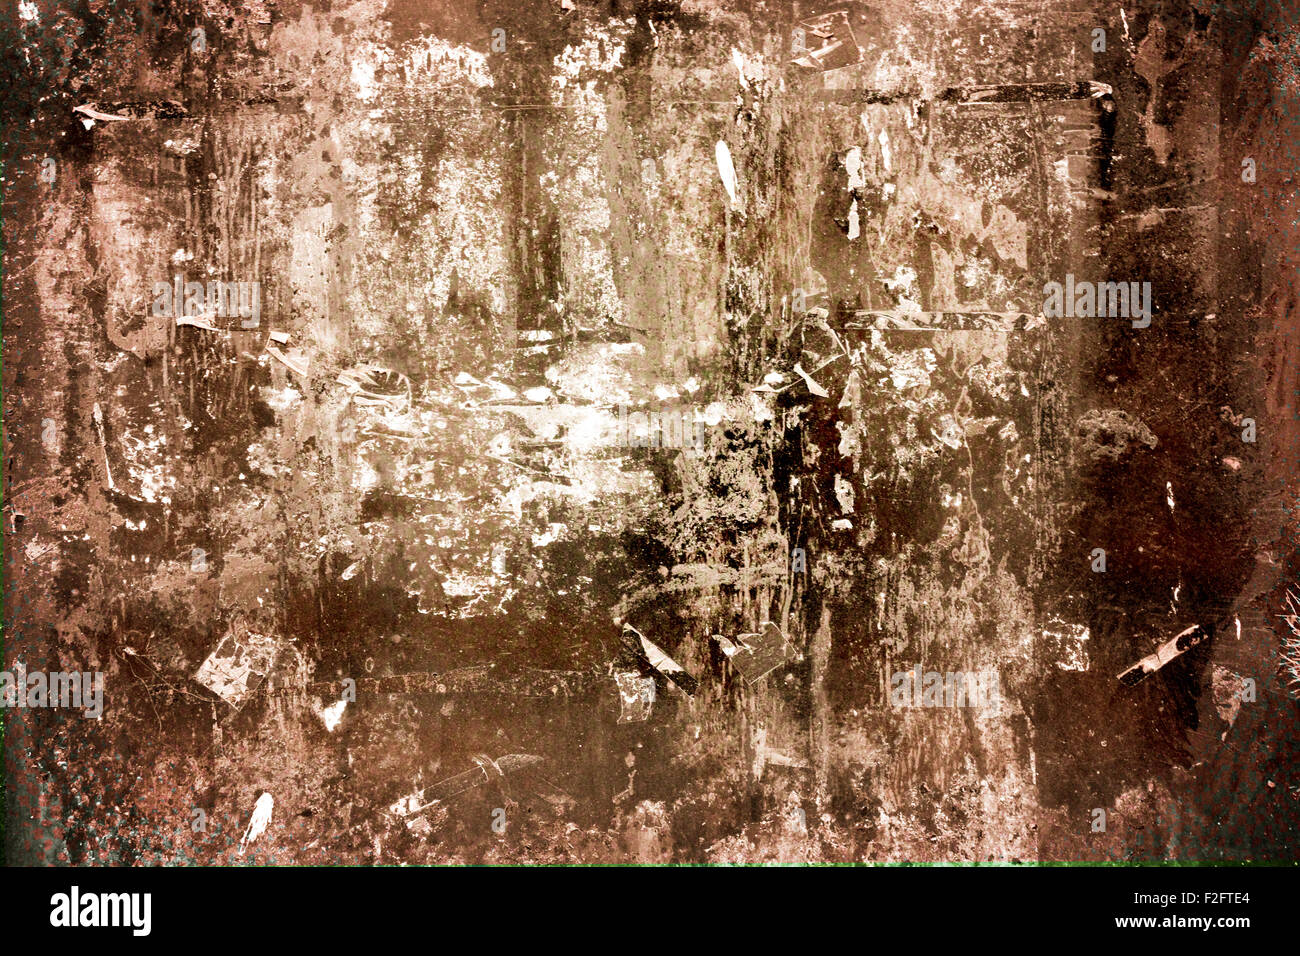 Abstract dirty stained grungy textured aged backdrop - Stock Image